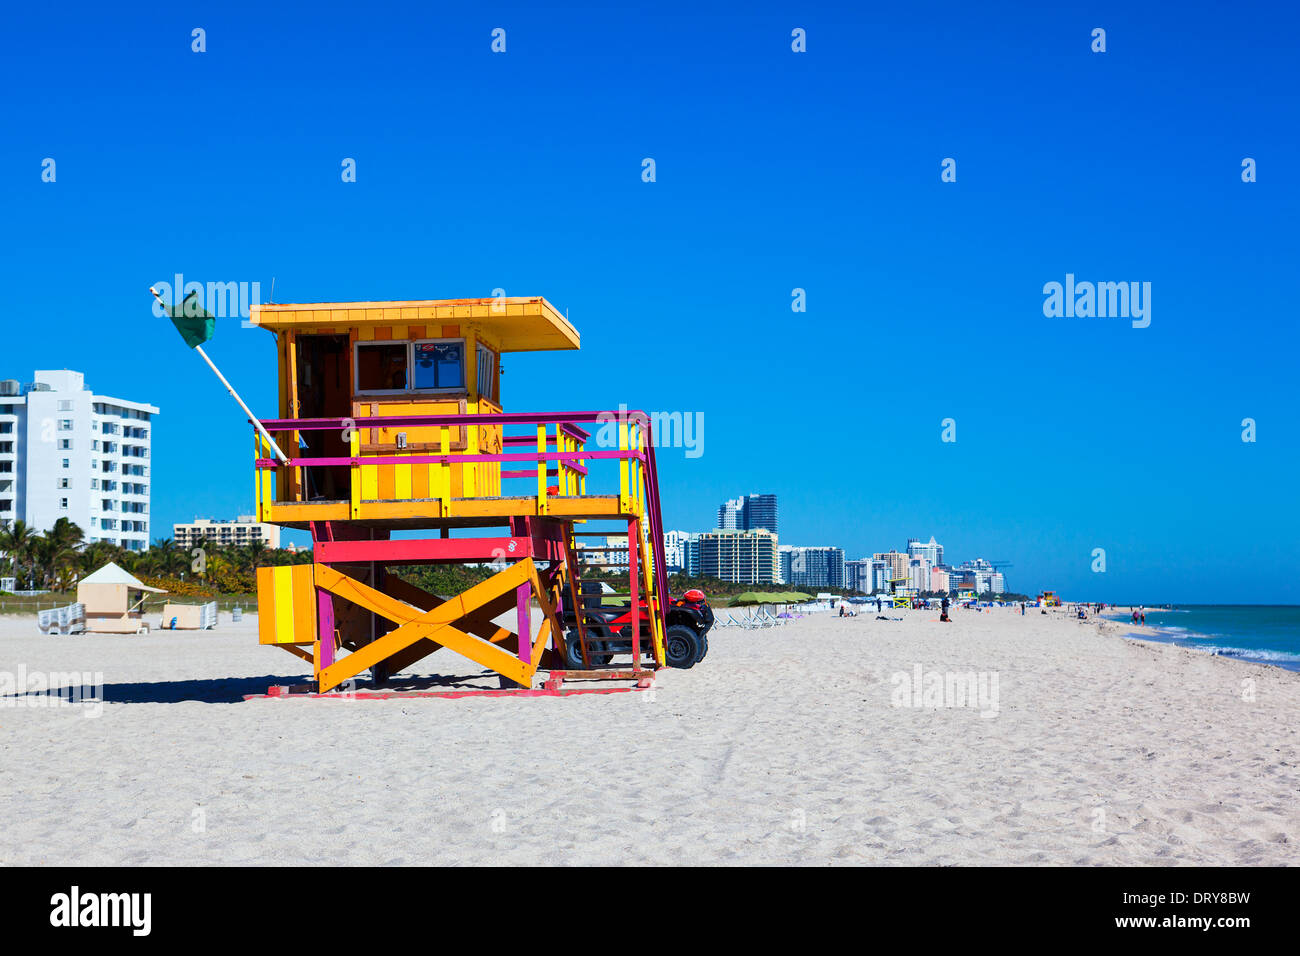 Floride, Miami Beach lifeguard tower dans un typique style art déco coloré Banque D'Images